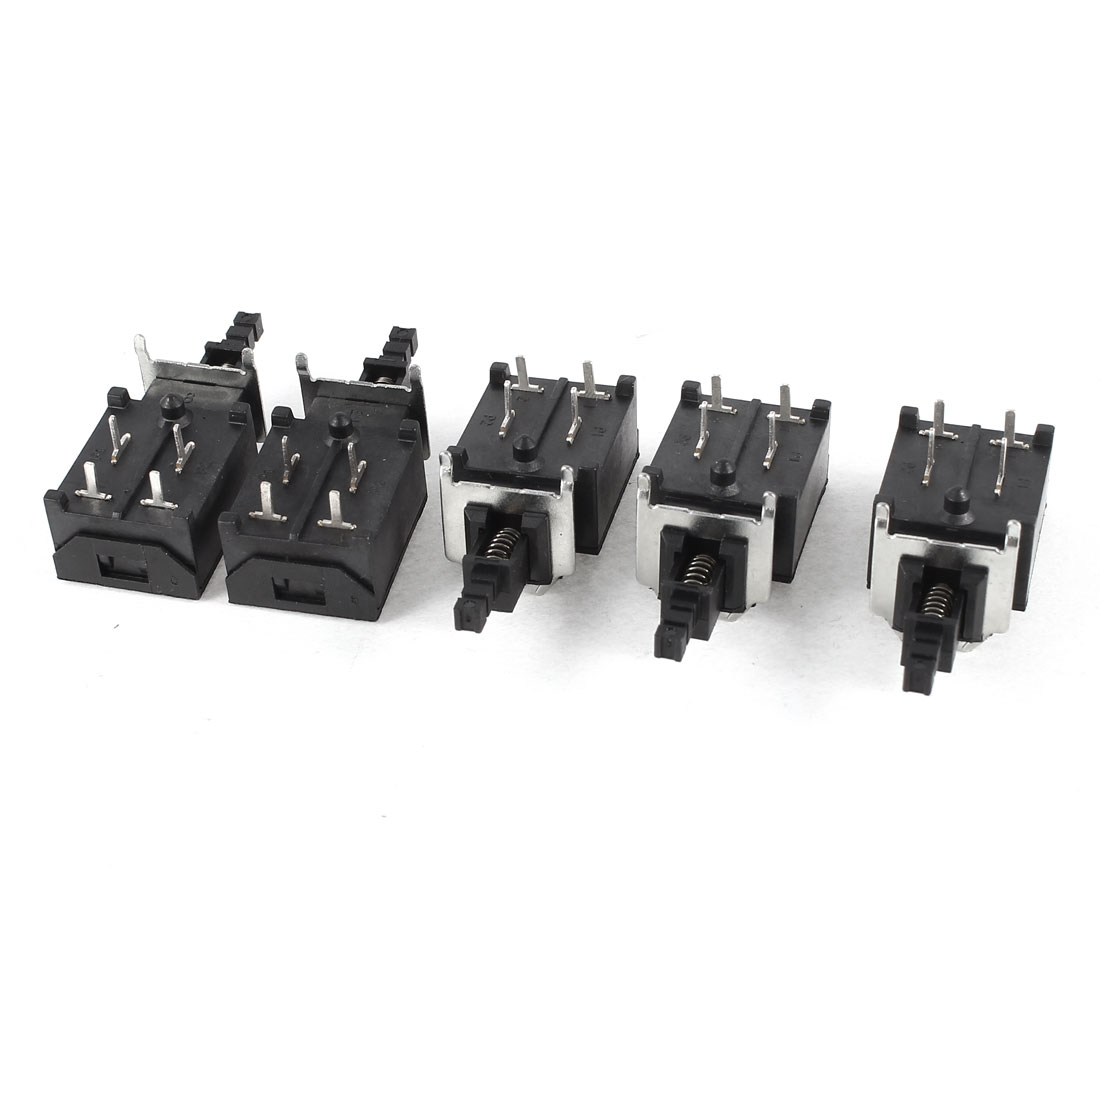 5 x AC 250V 4A 4 Pin 4P SPDT Latching Push Button Power Switch Lock KDC-A16